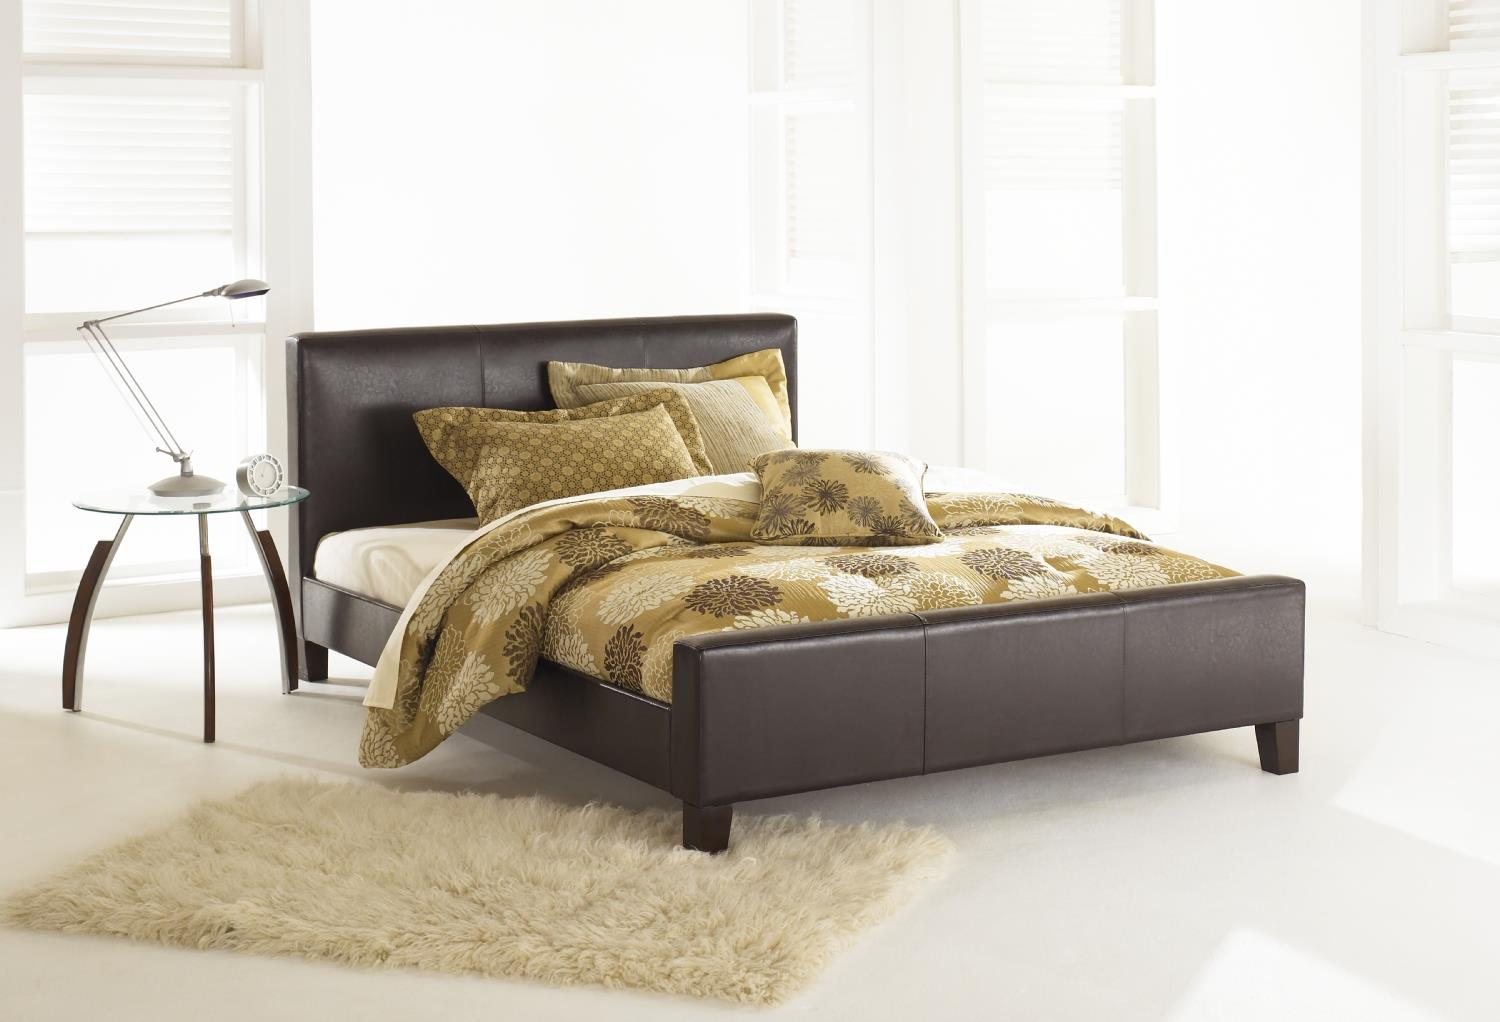 Fashion Bed Group Euro Cal King Bed - Item Number: D87227133